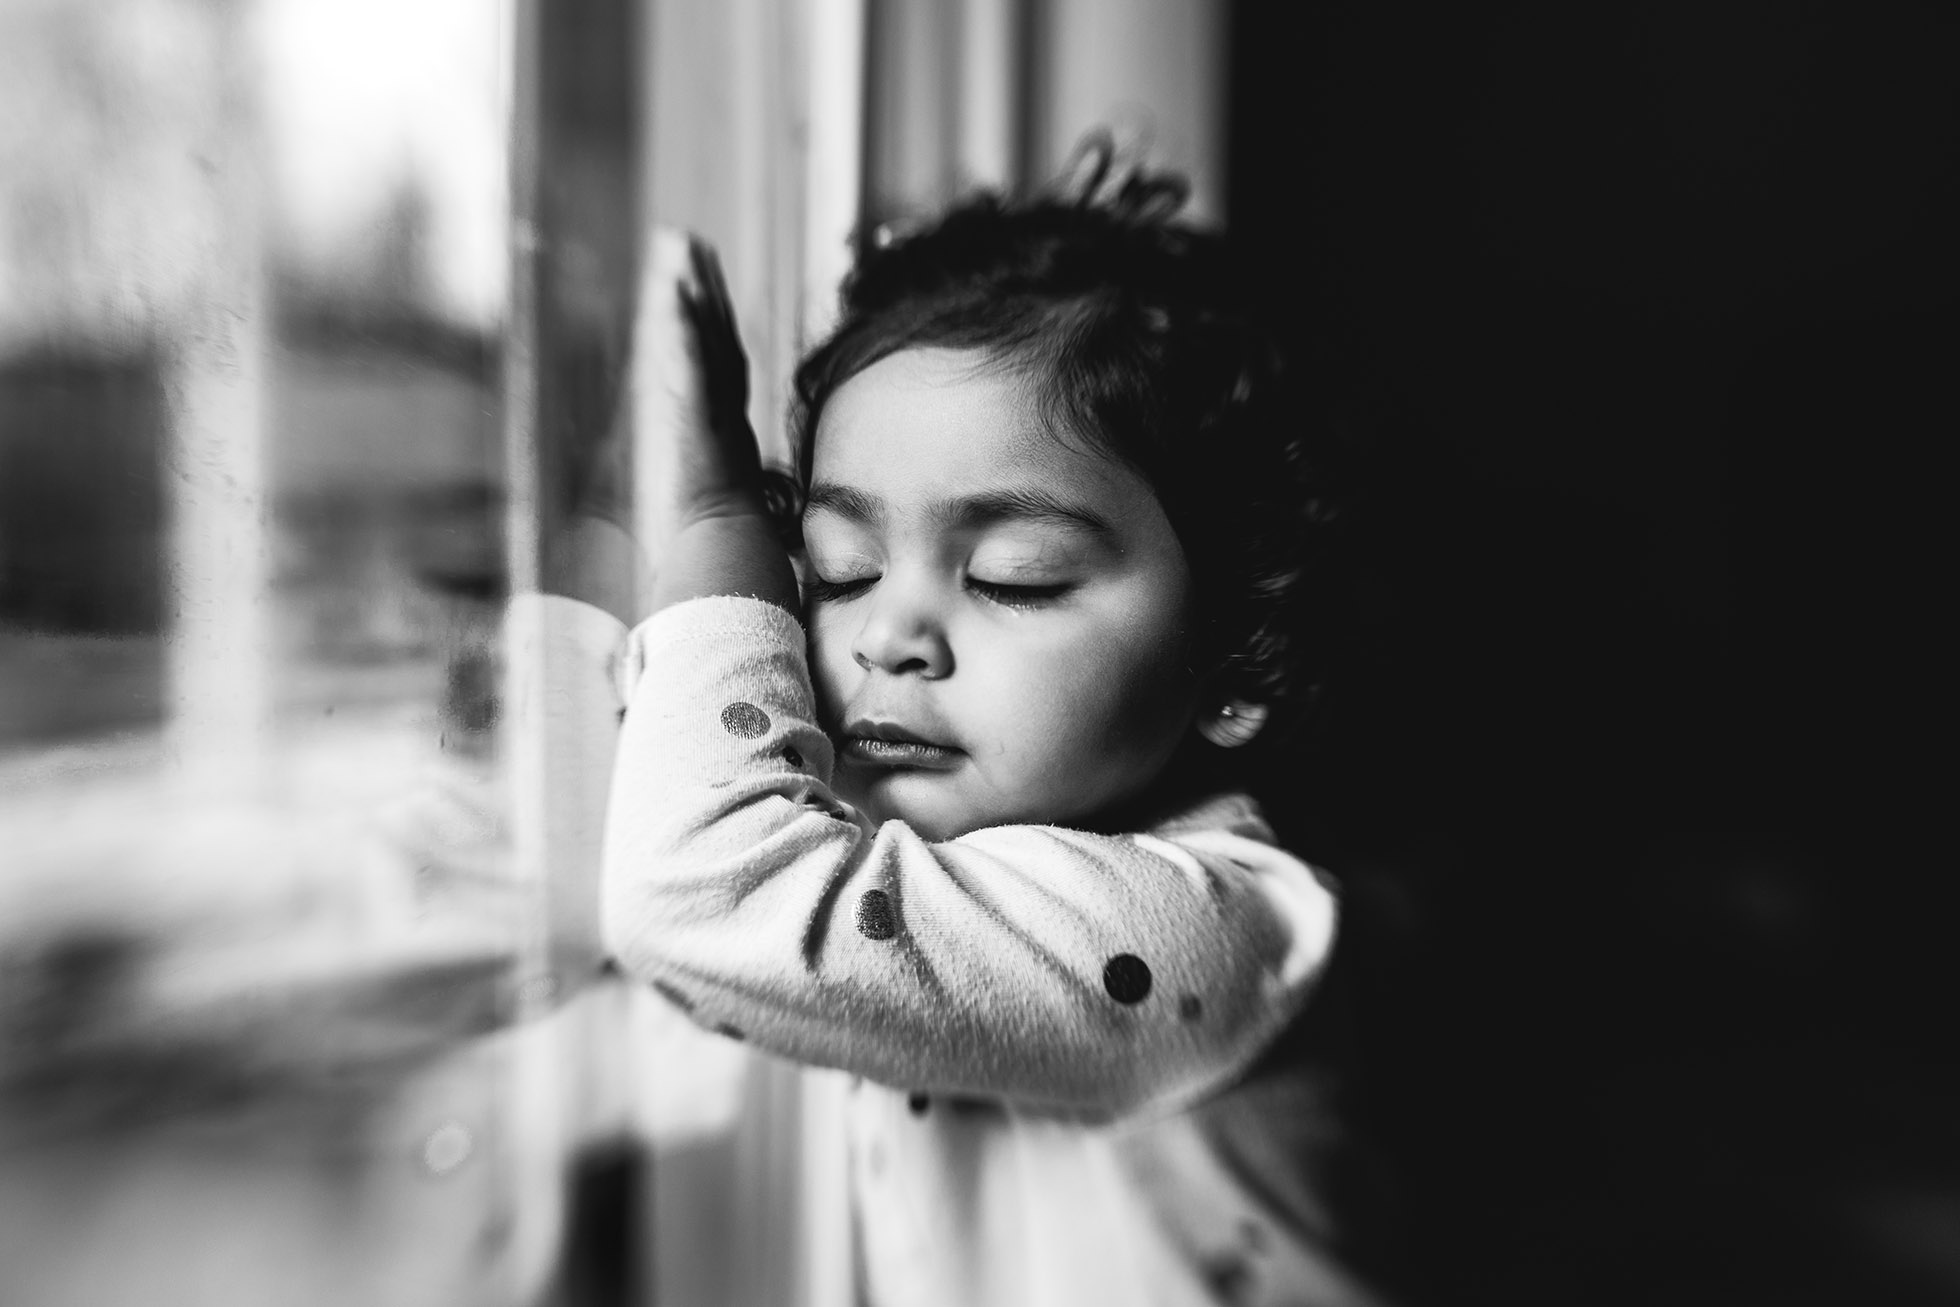 girl by window with eyes closed black and white jyo bhamadipati